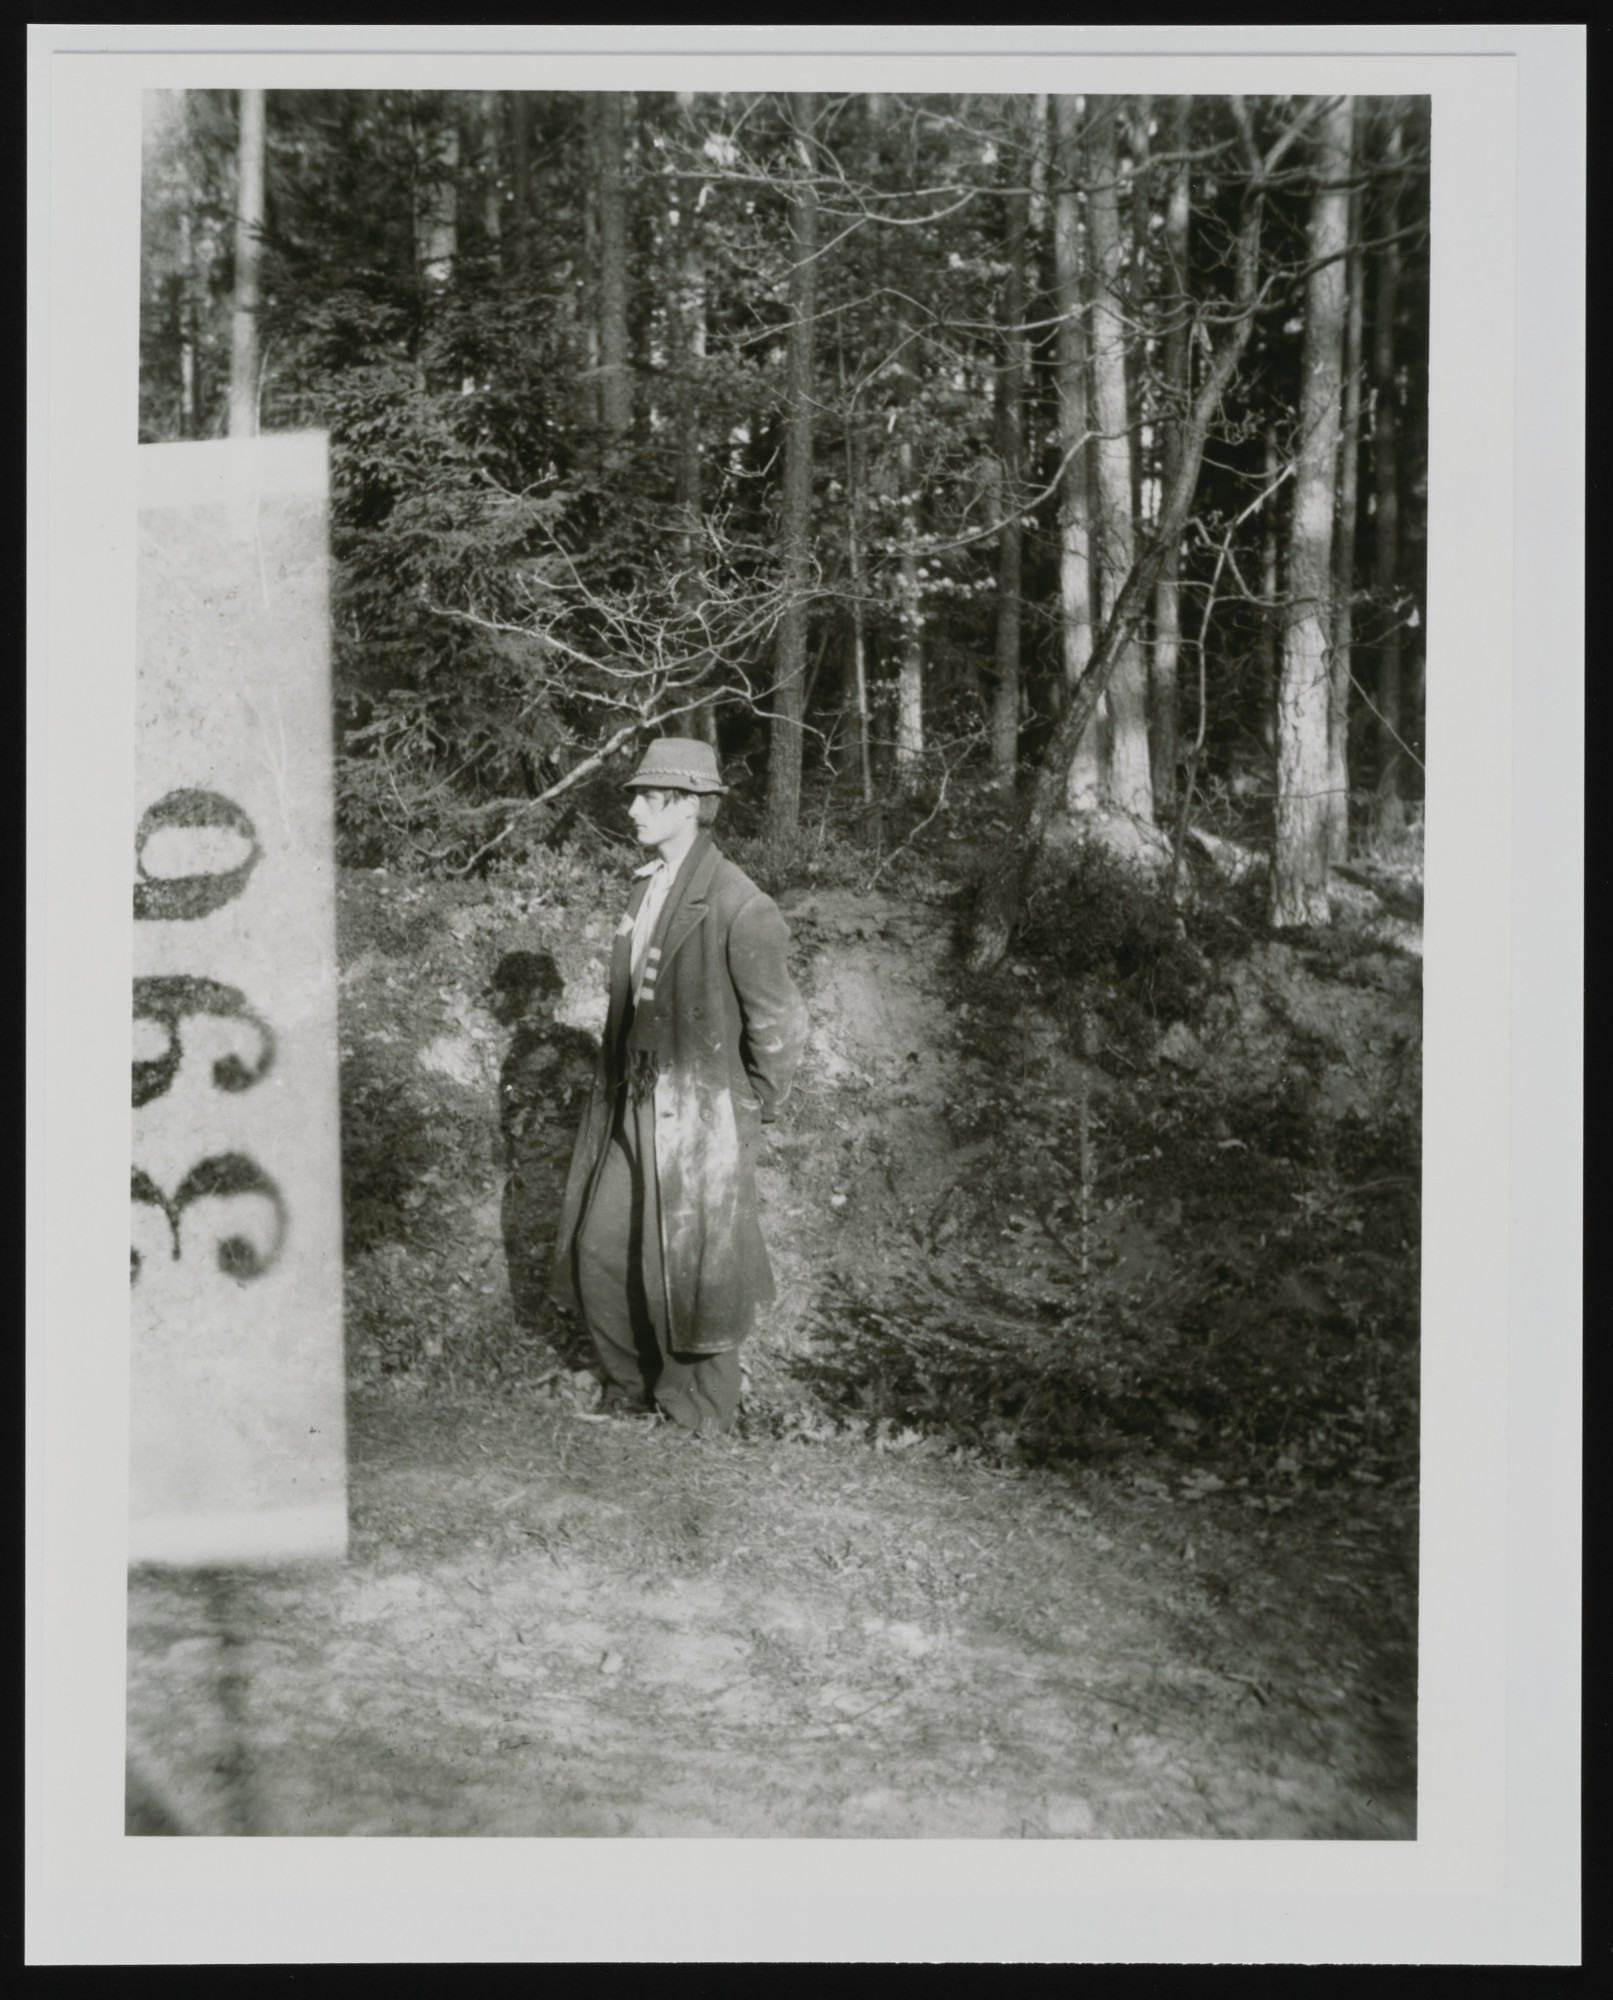 Jan Sowka awaits execution in the forest near Buchenwald concentration camp.